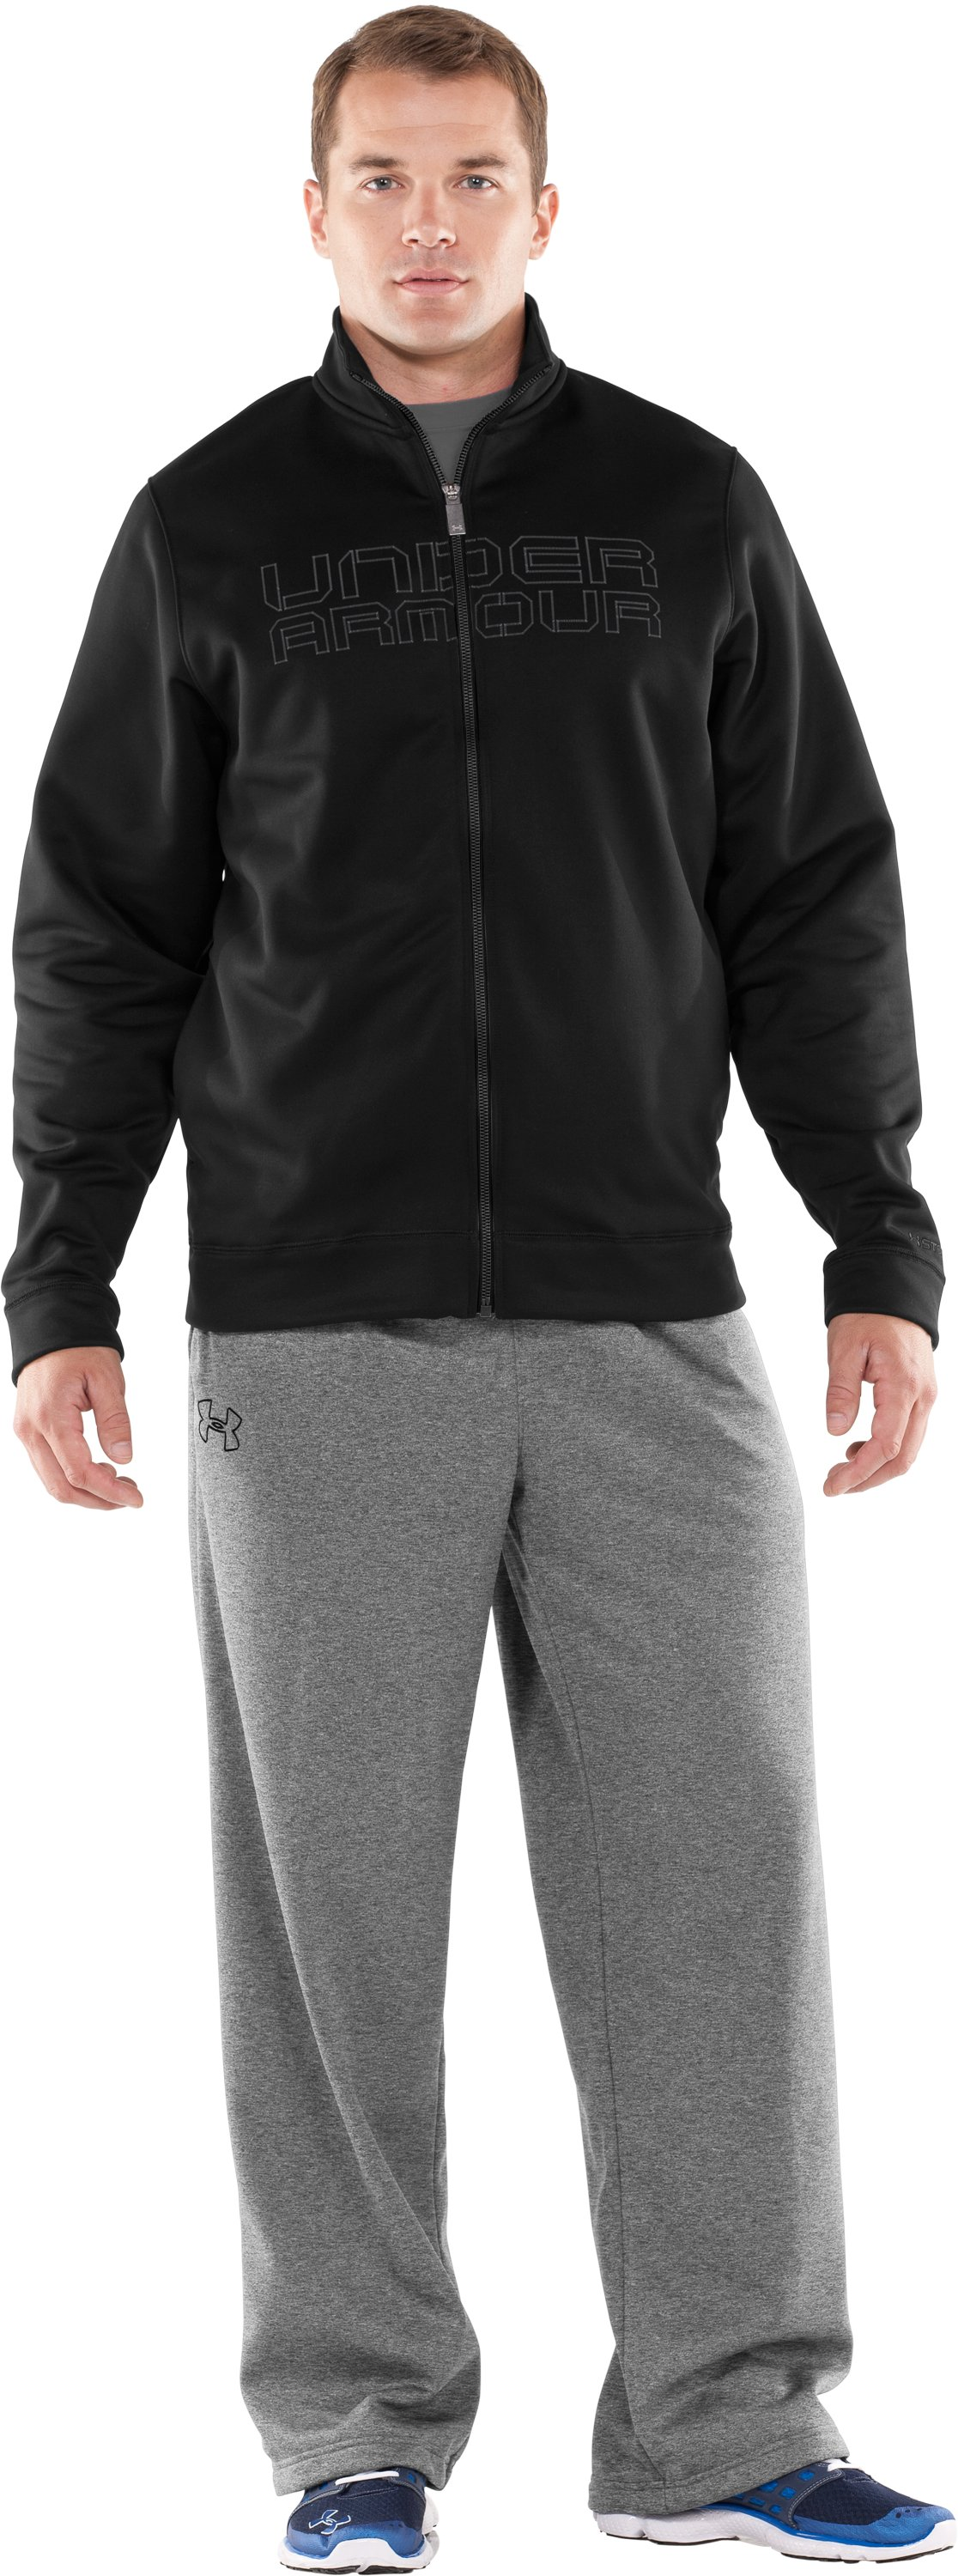 Men's Armour® Fleece Storm Full Zip Jacket, Black